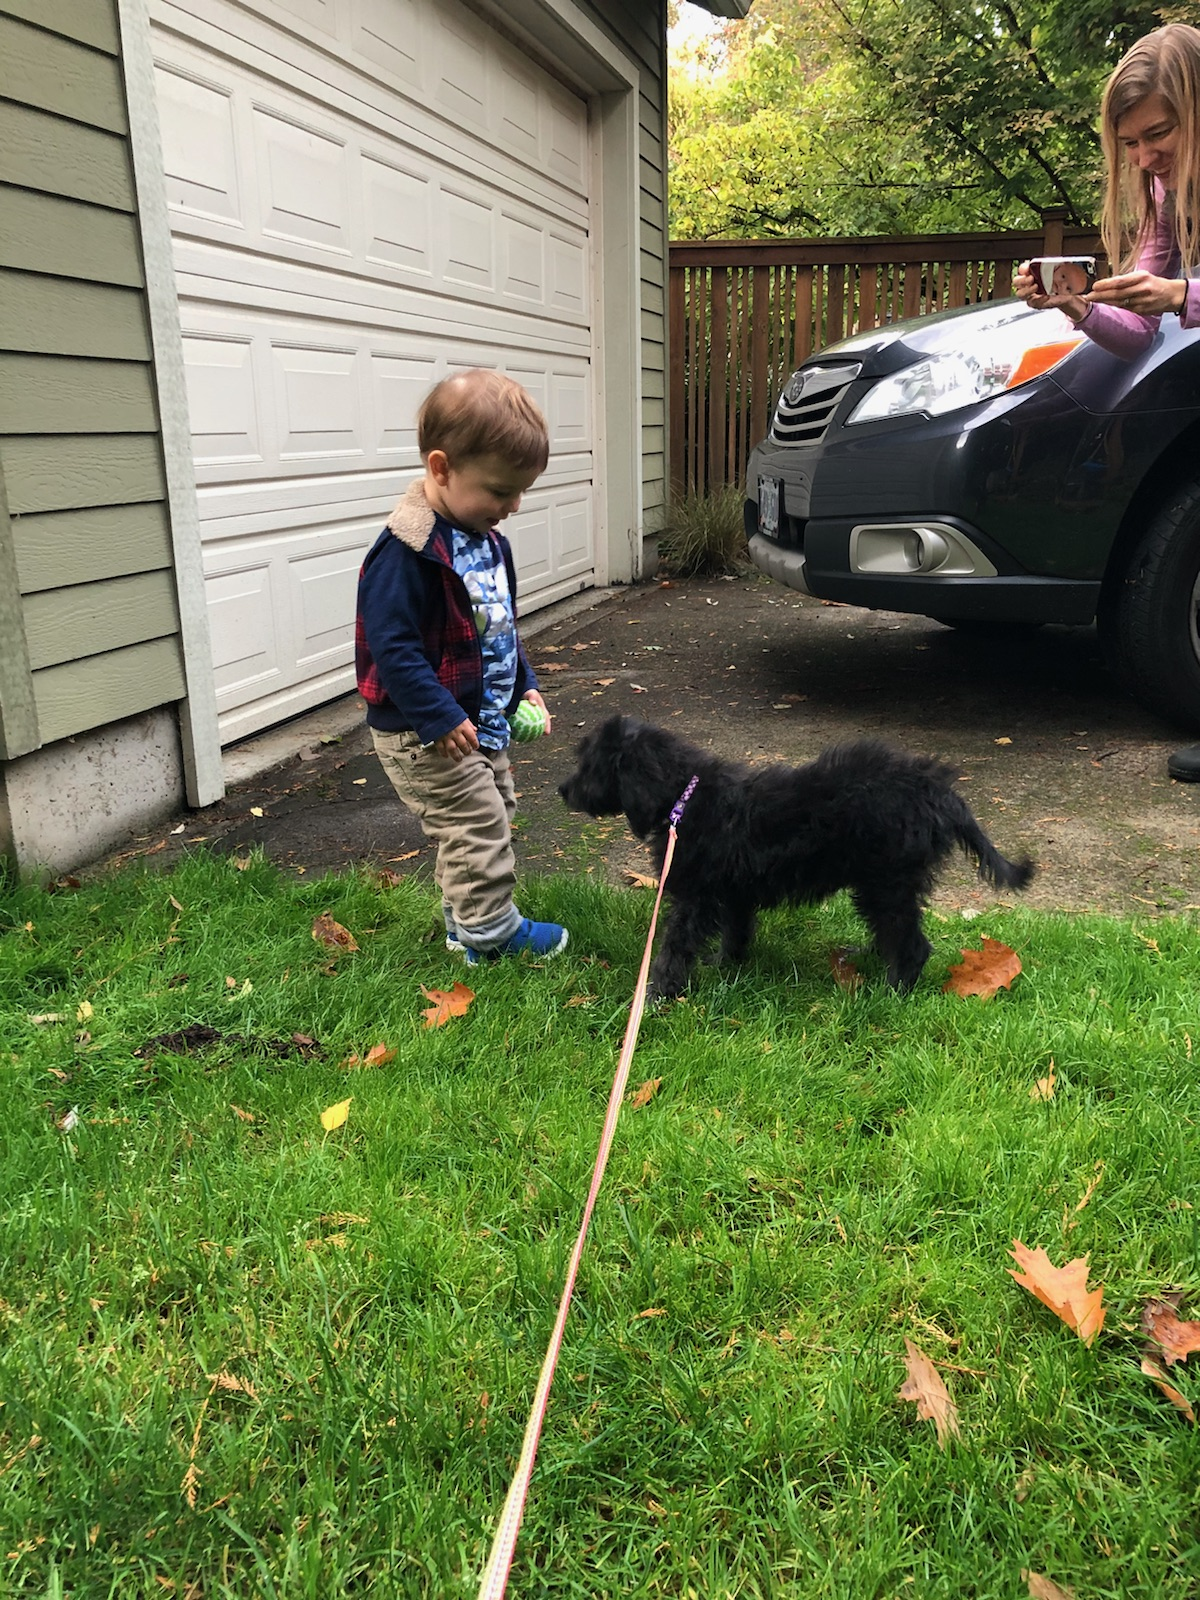 POTTY TRAINING AN AUSSIEDOODLE PUPPY - 7 DAY CRATE TRAINING SCHEDULE- BLACK MULTIGEN LABRADOODLE PUPPY ON A LEASH